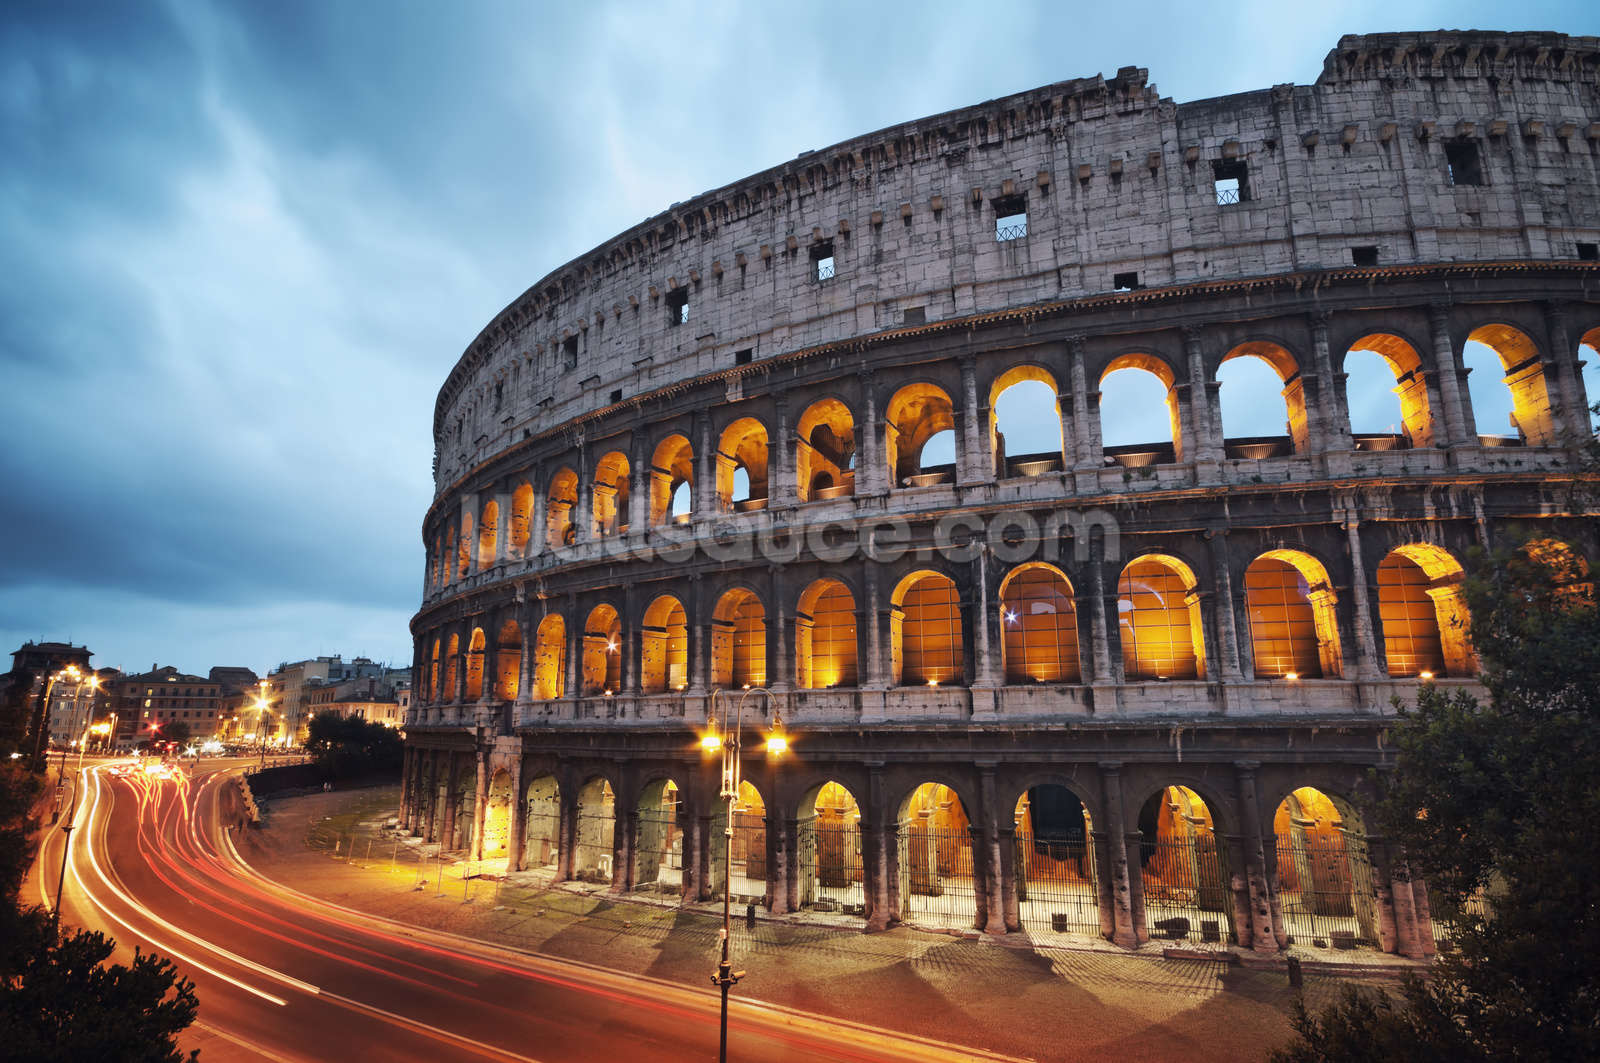 Best Wallpaper Night Colosseum - 41743139coliseum-at-night-rome-italy  Perfect Image Reference.jpg